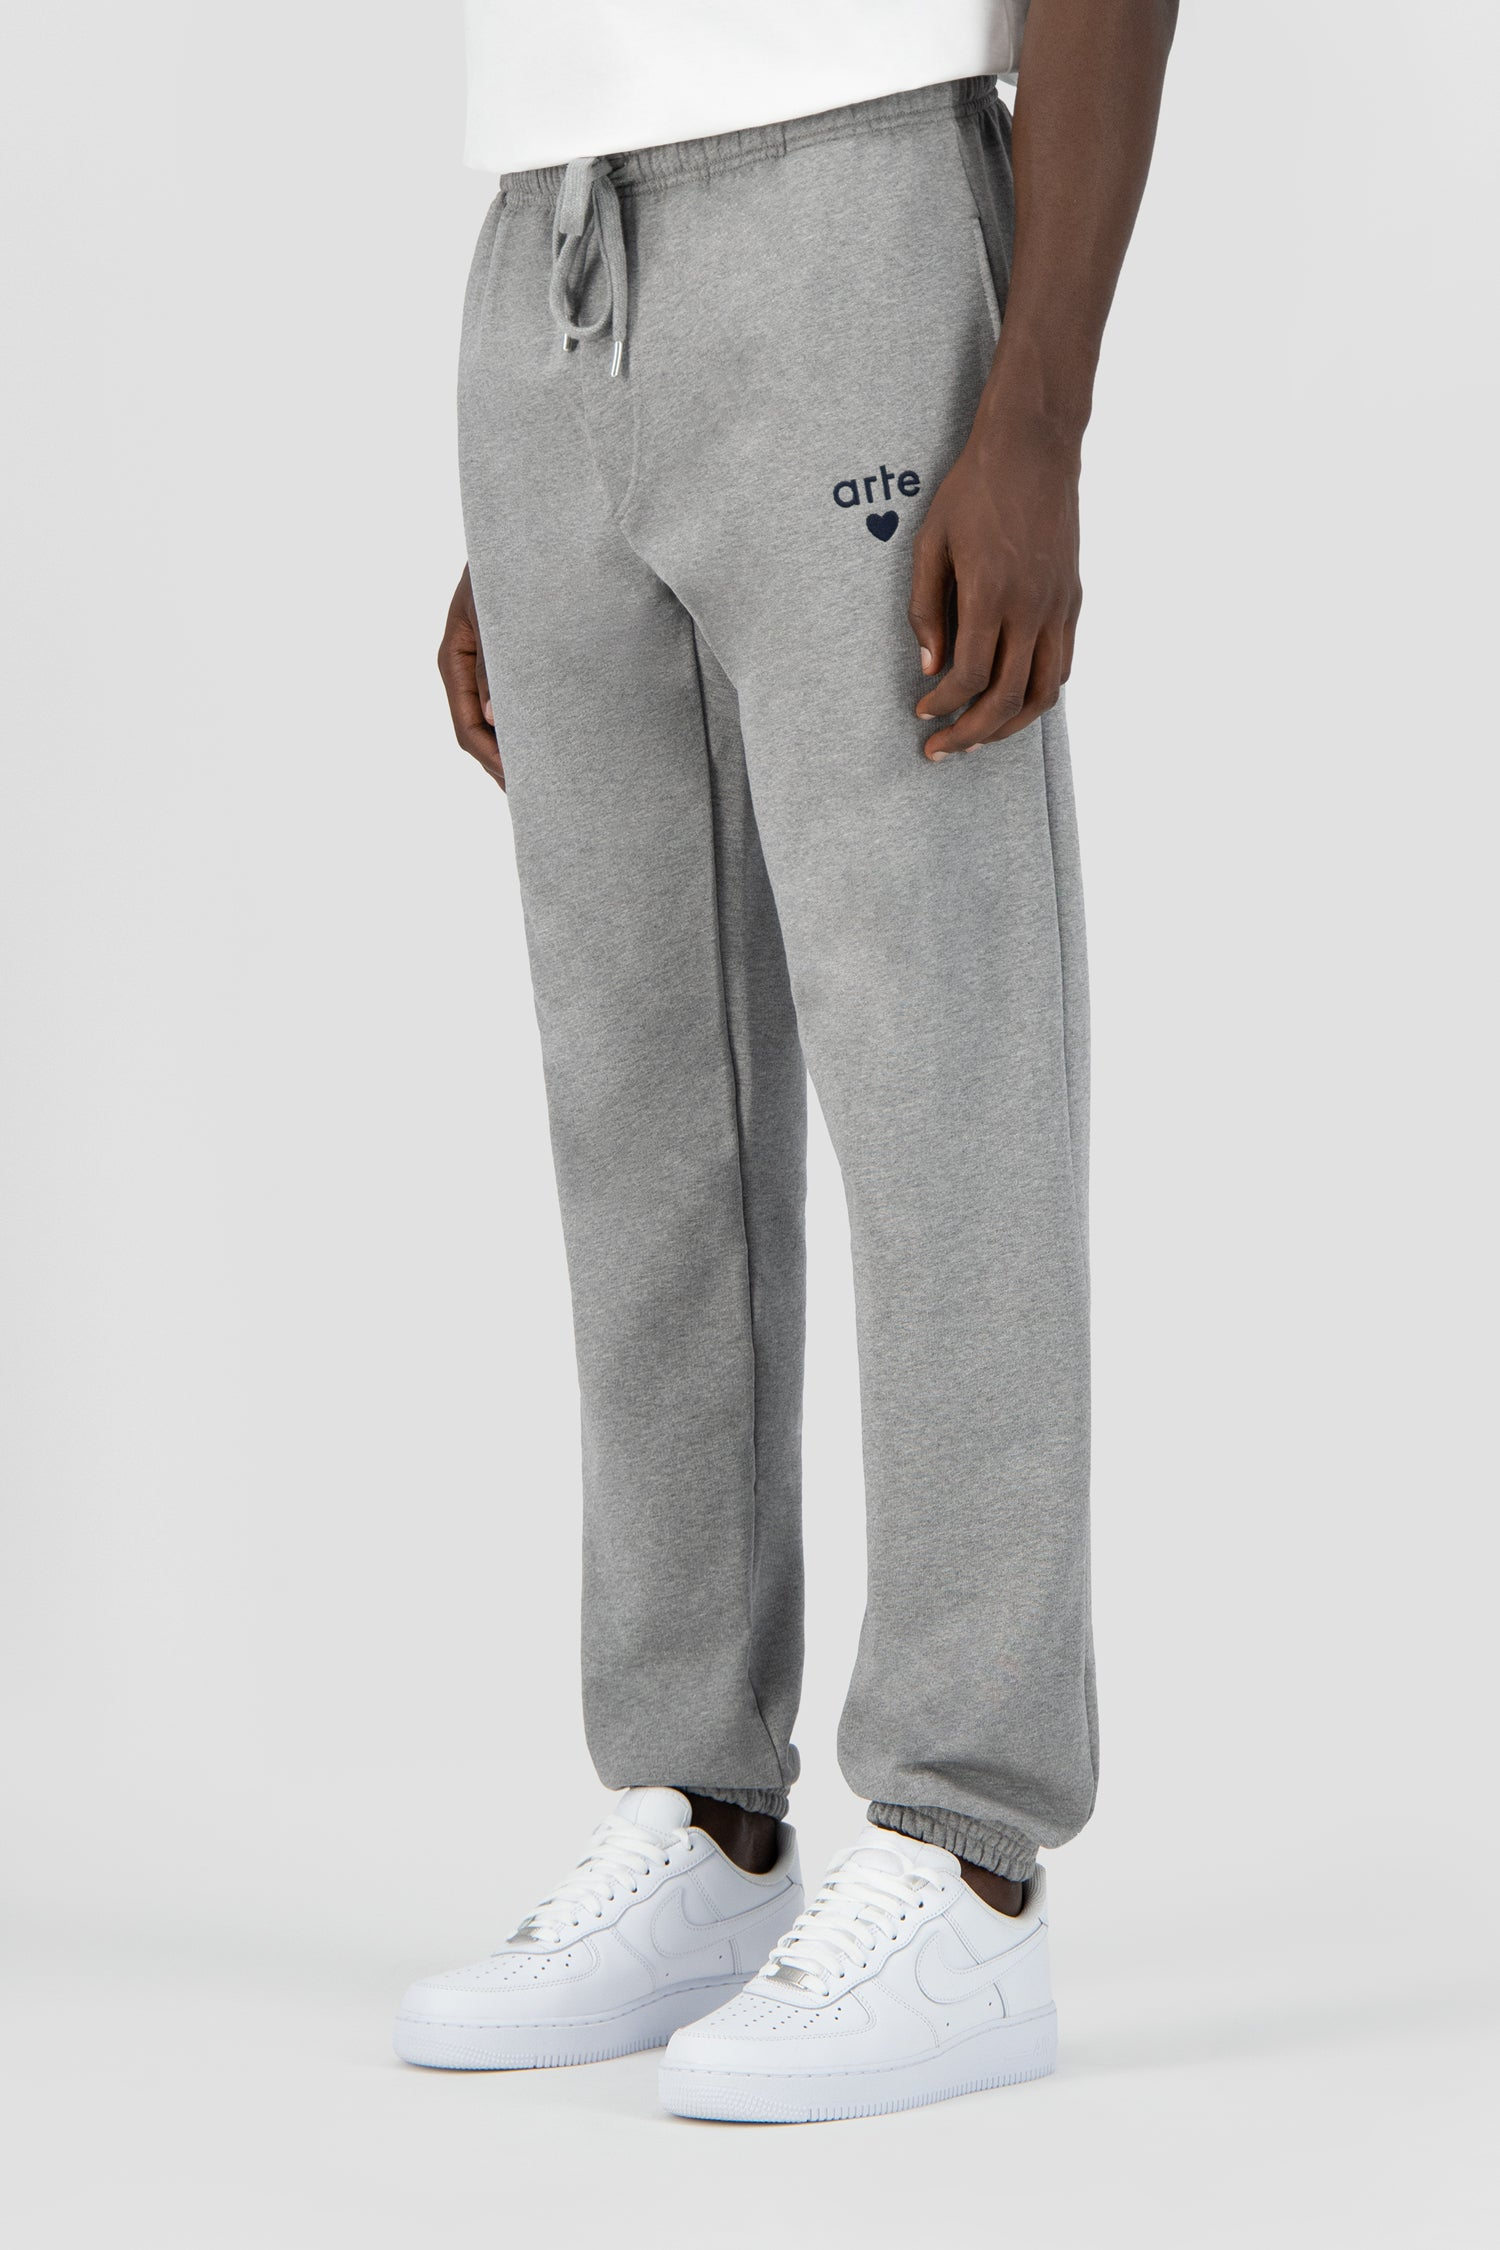 Tristian Heart Sweatpants - Grey